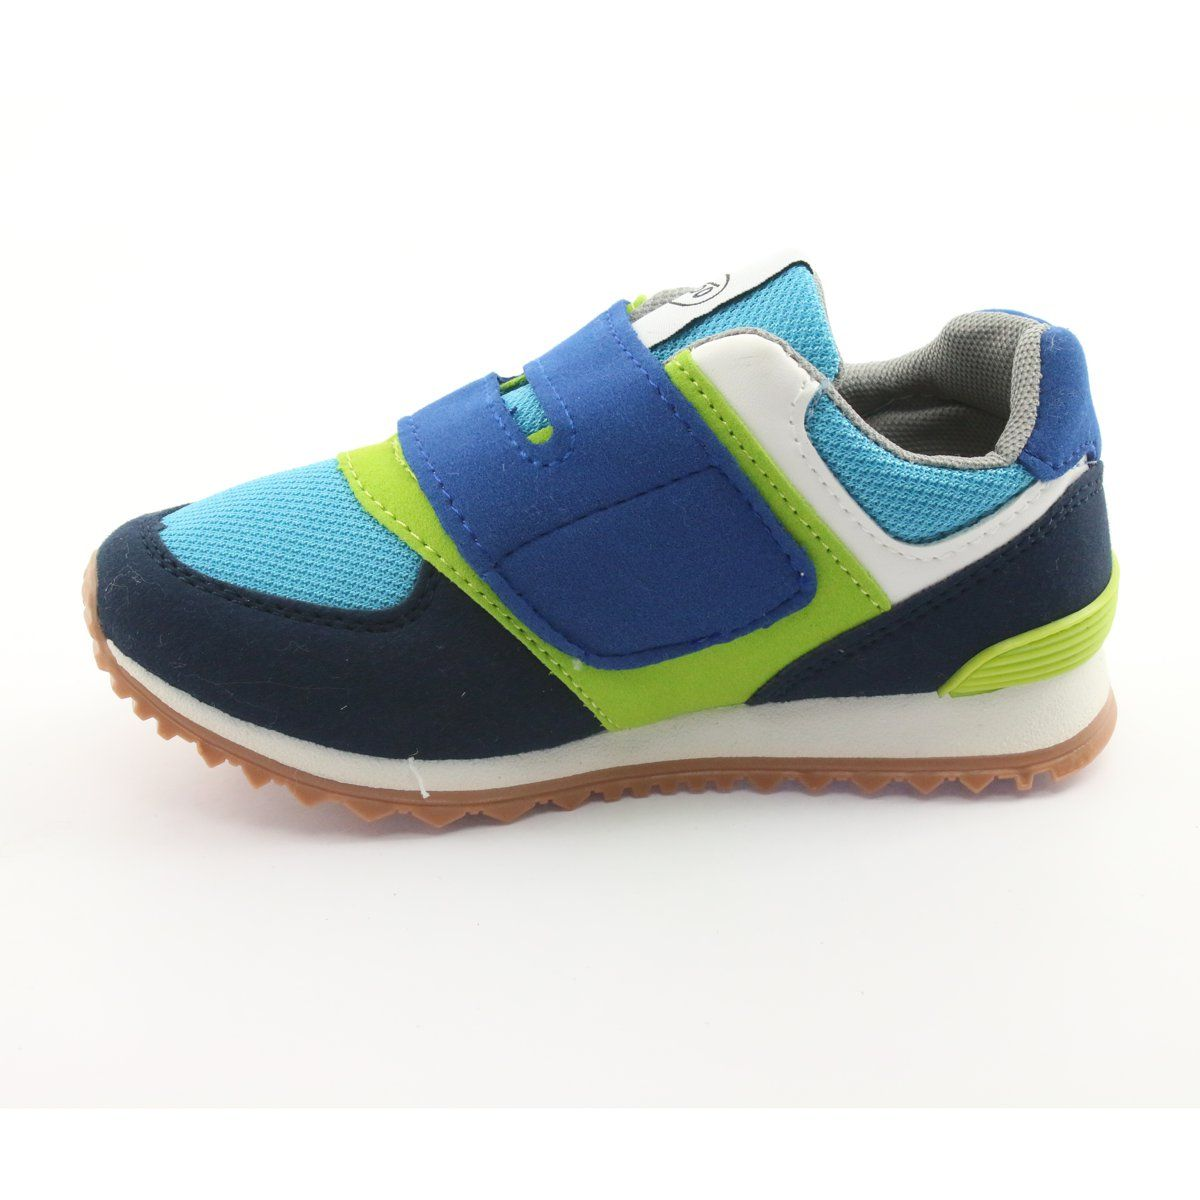 Befado Children S Shoes Up To 23 Cm 516y043 Blue Multicolored Childrens Shoes Boy Shoes Kid Shoes